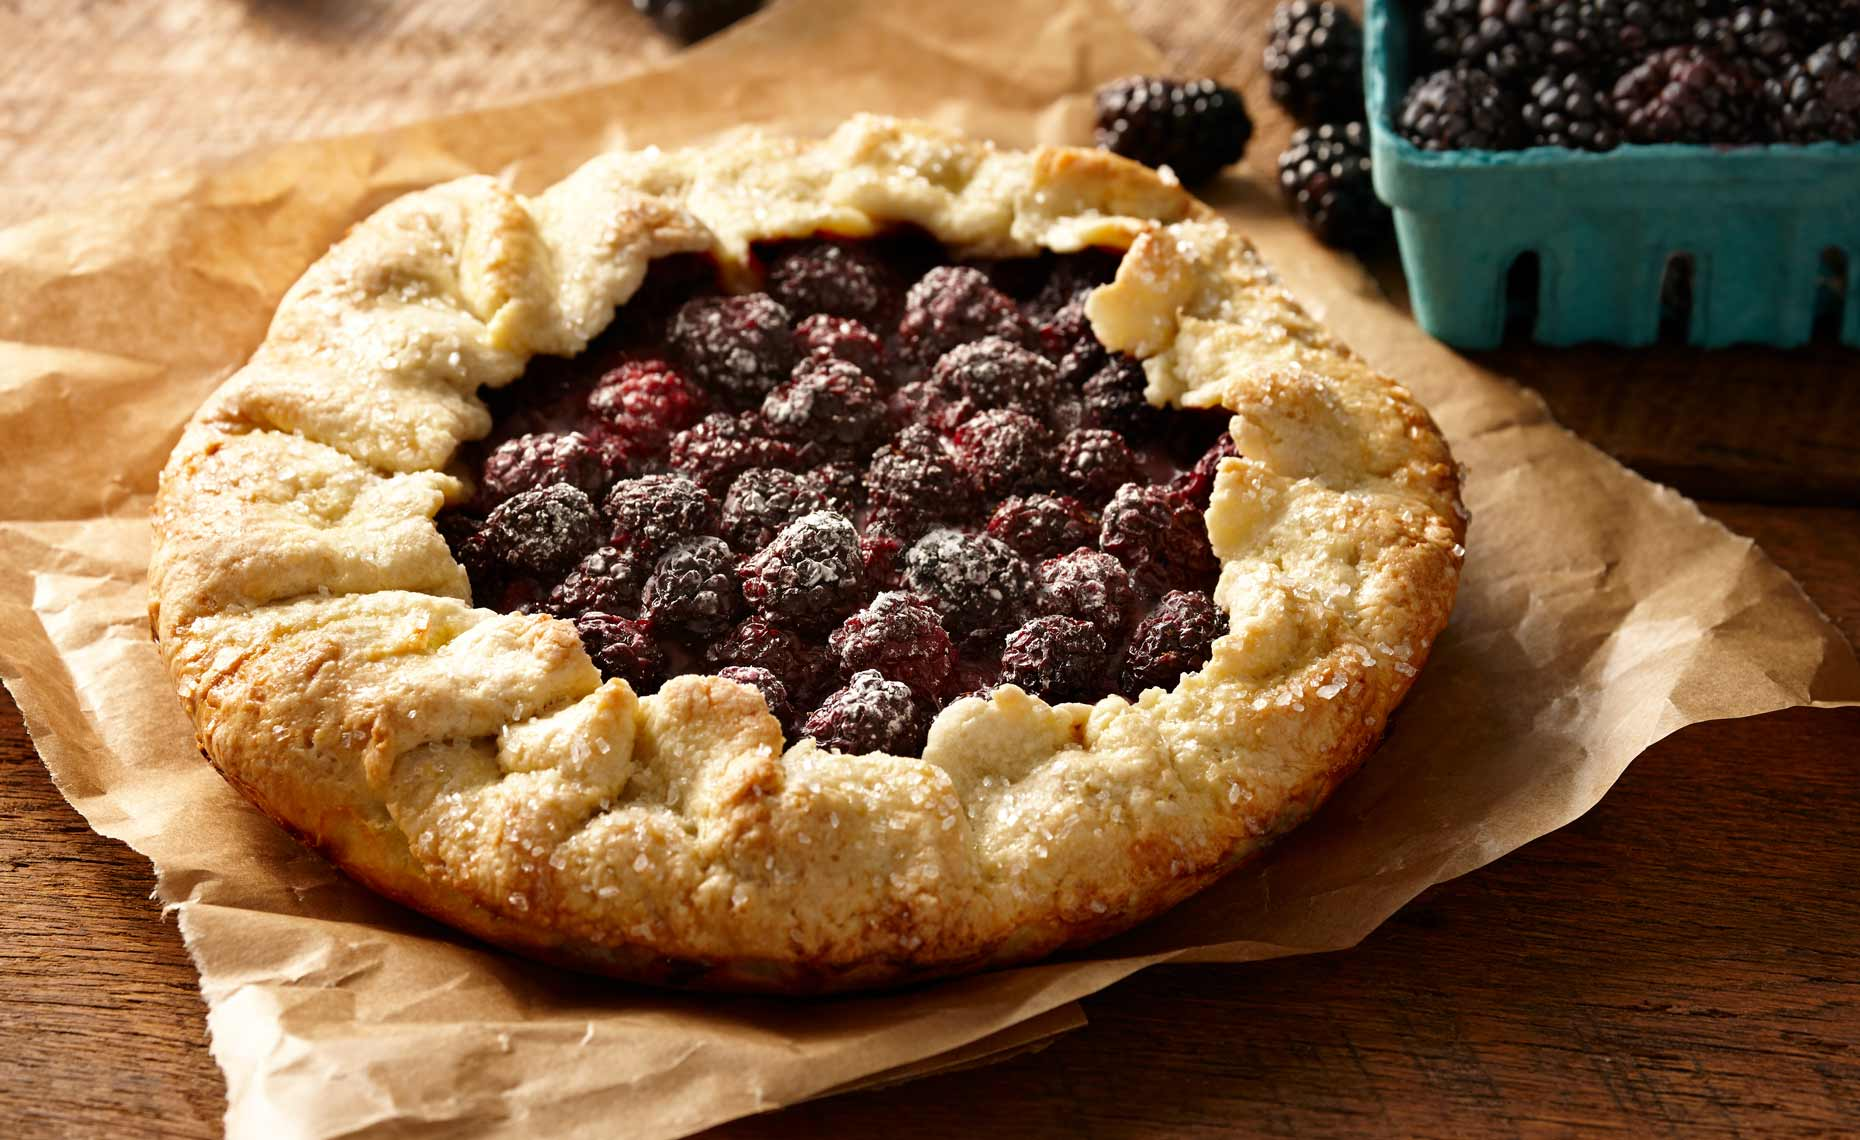 pizza-pasta-bread-photographers-galette-blackberry-26